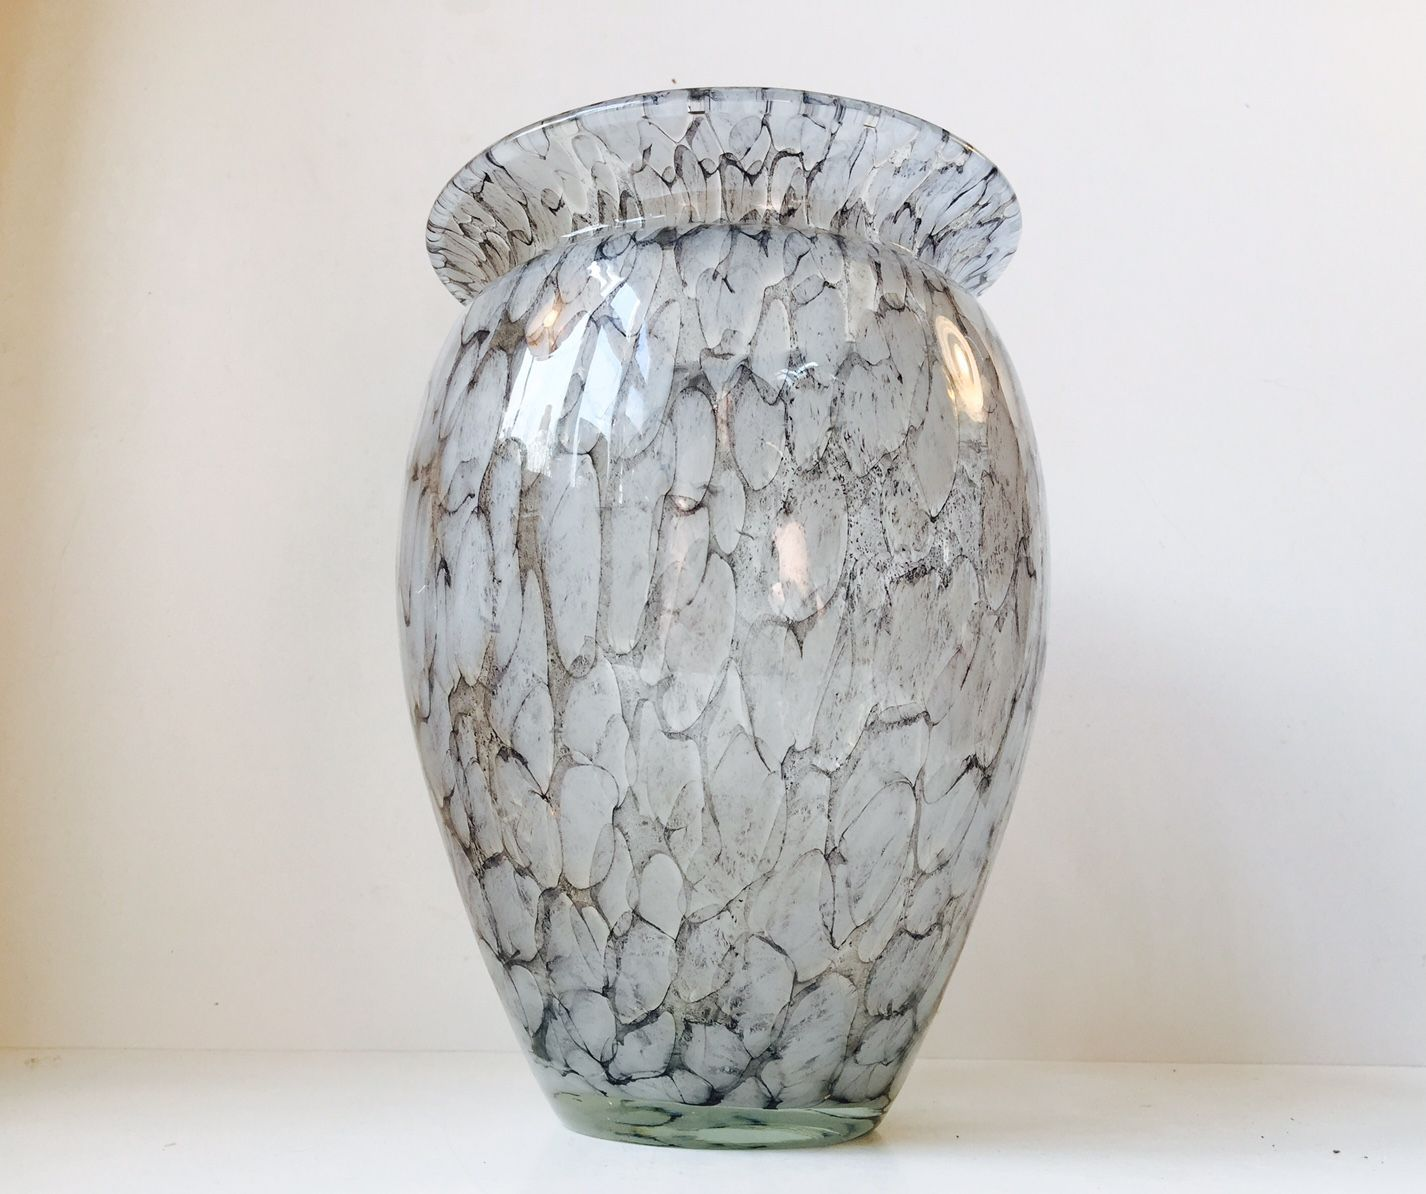 Vintage italian blister glass vase by ercole barovier for sale at vintage italian blister glass vase by ercole barovier reviewsmspy